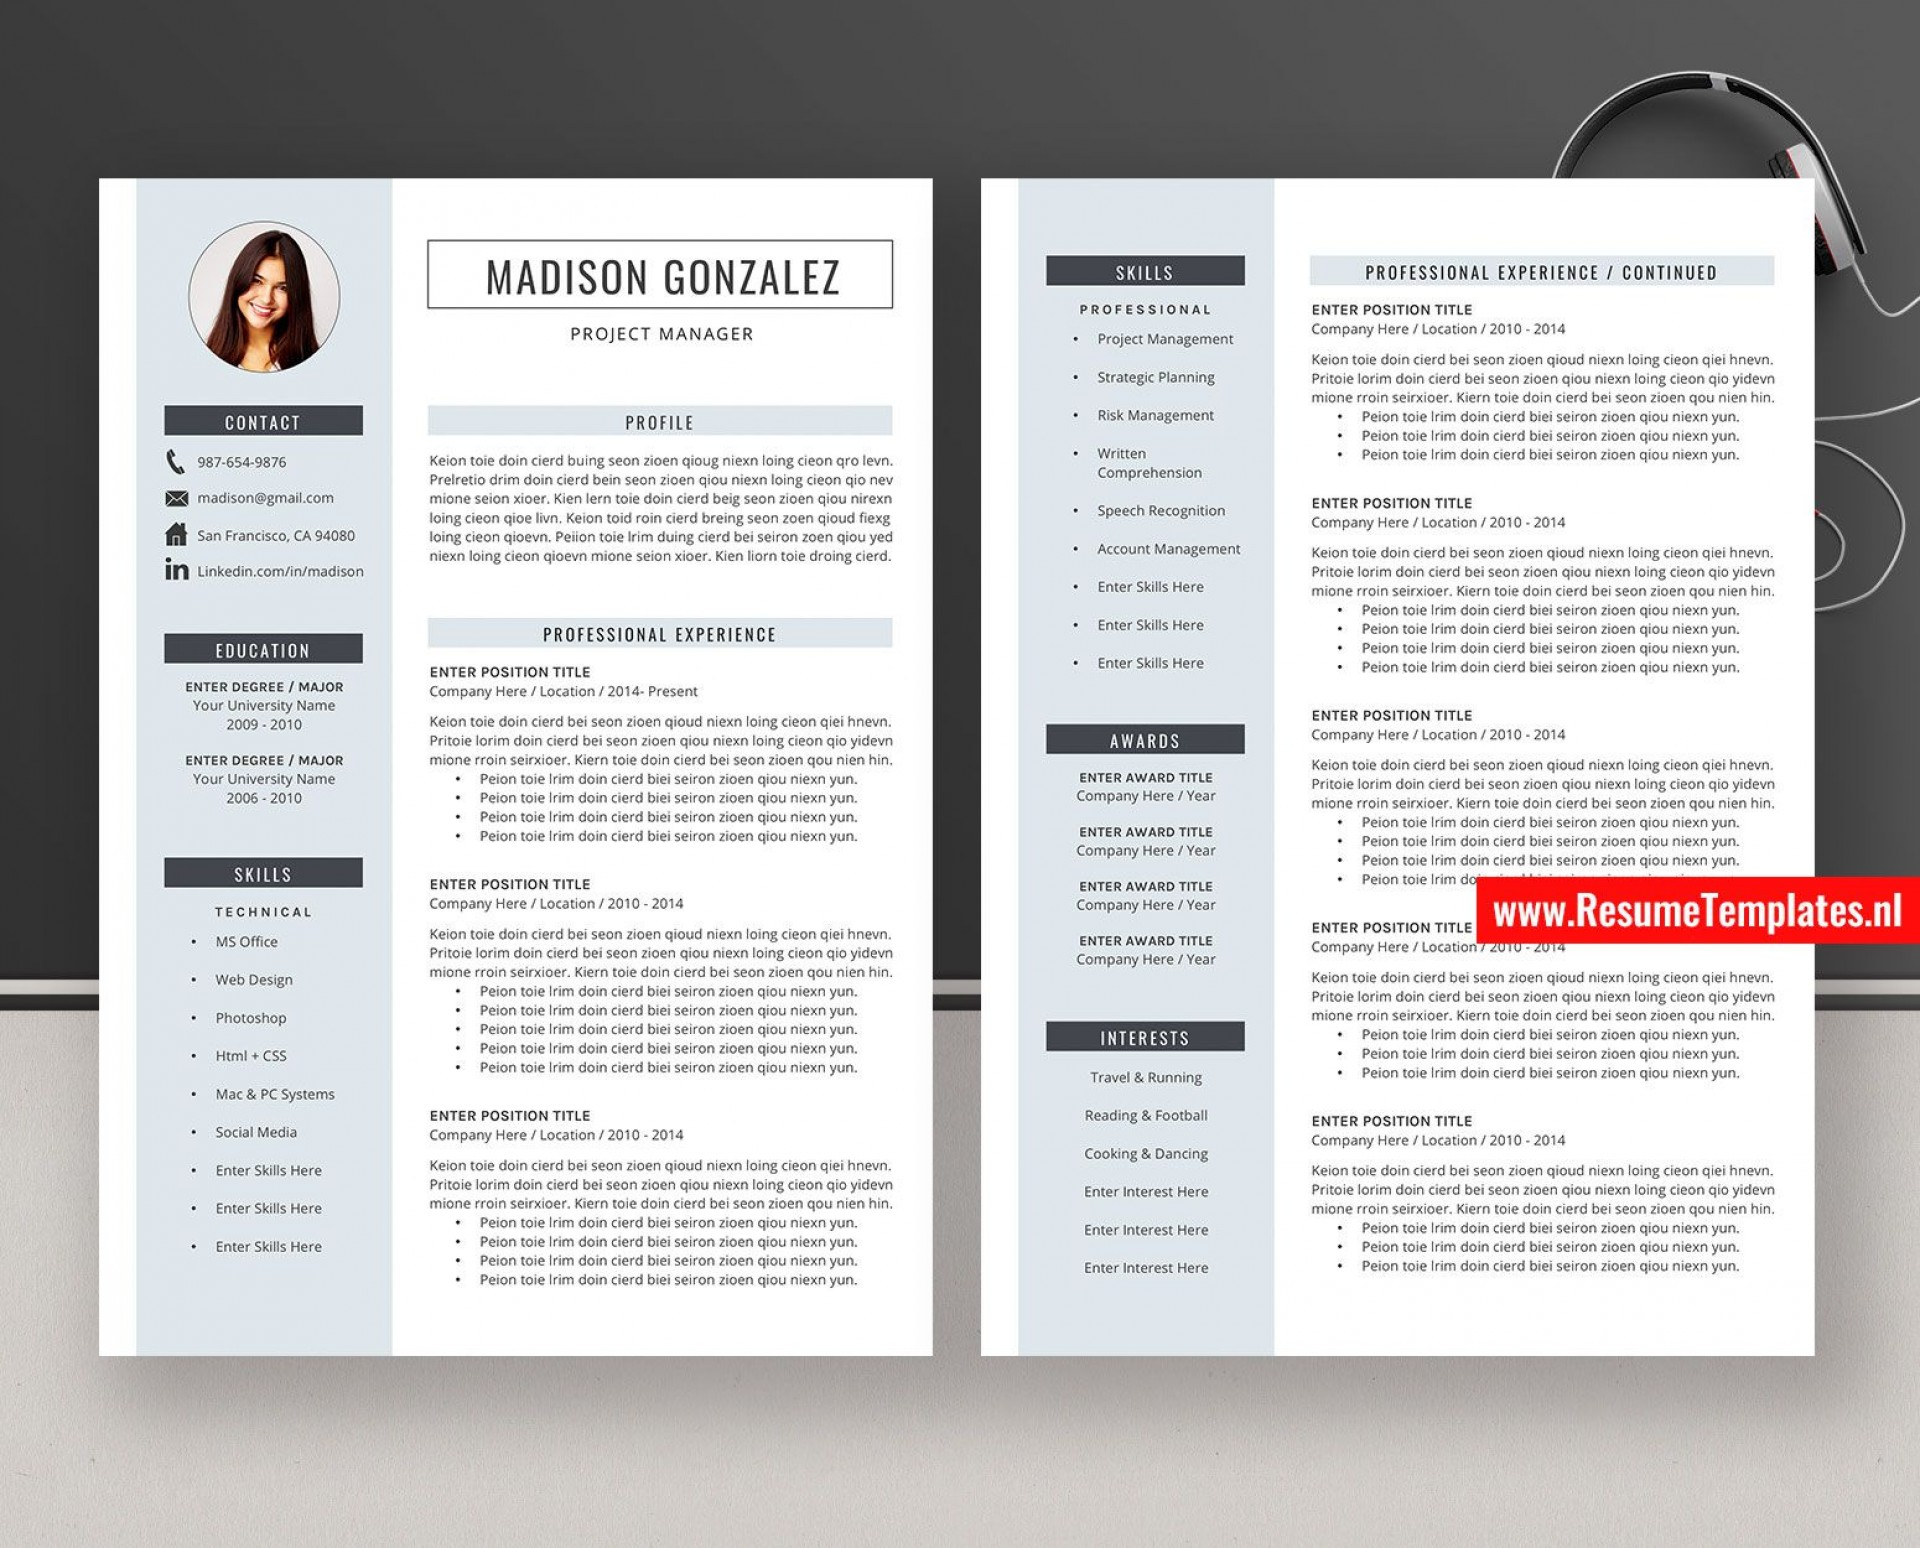 009 Imposing Curriculum Vitae Word Template Sample  Templates Download M 2019 Cv Free1920